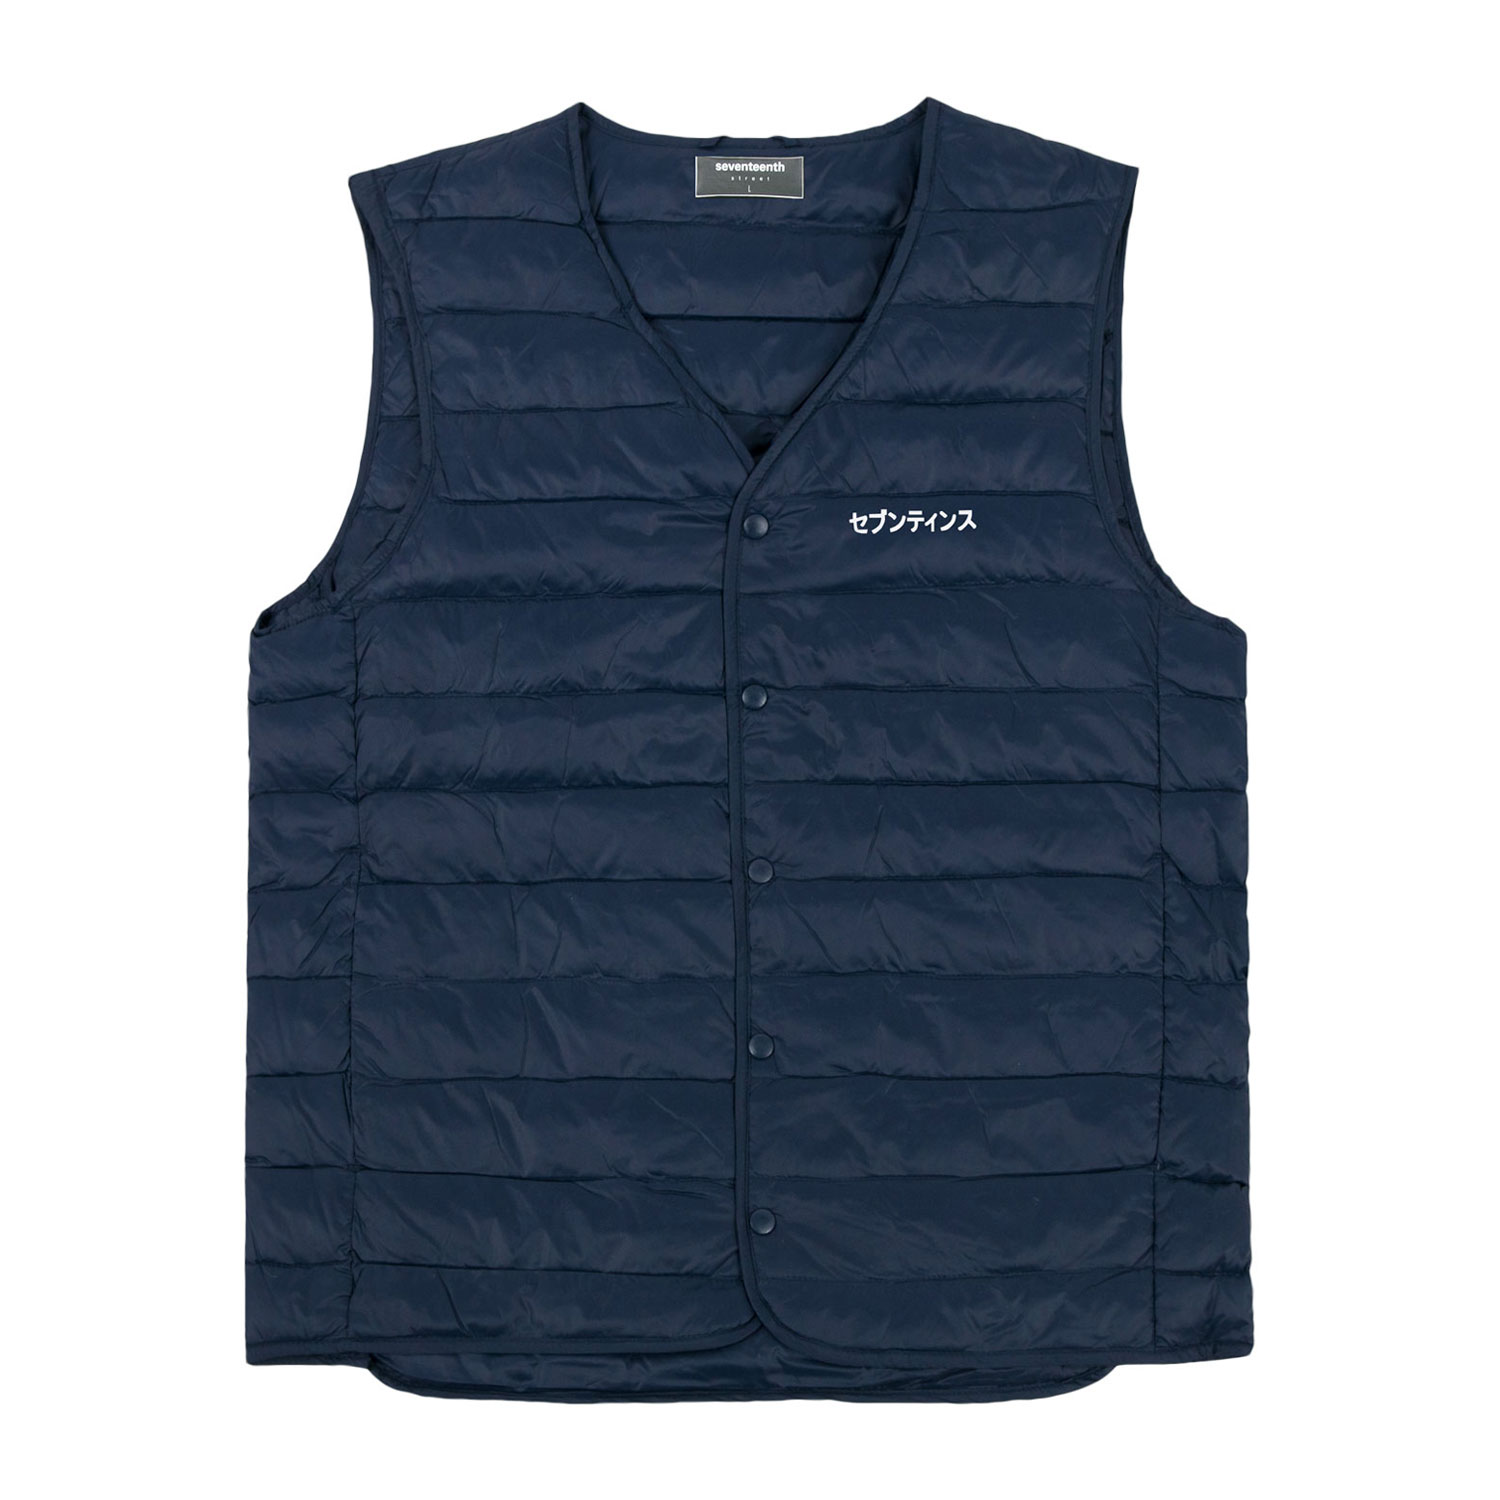 DUCK DOWN ULTRA LIGHT VEST - NAVY